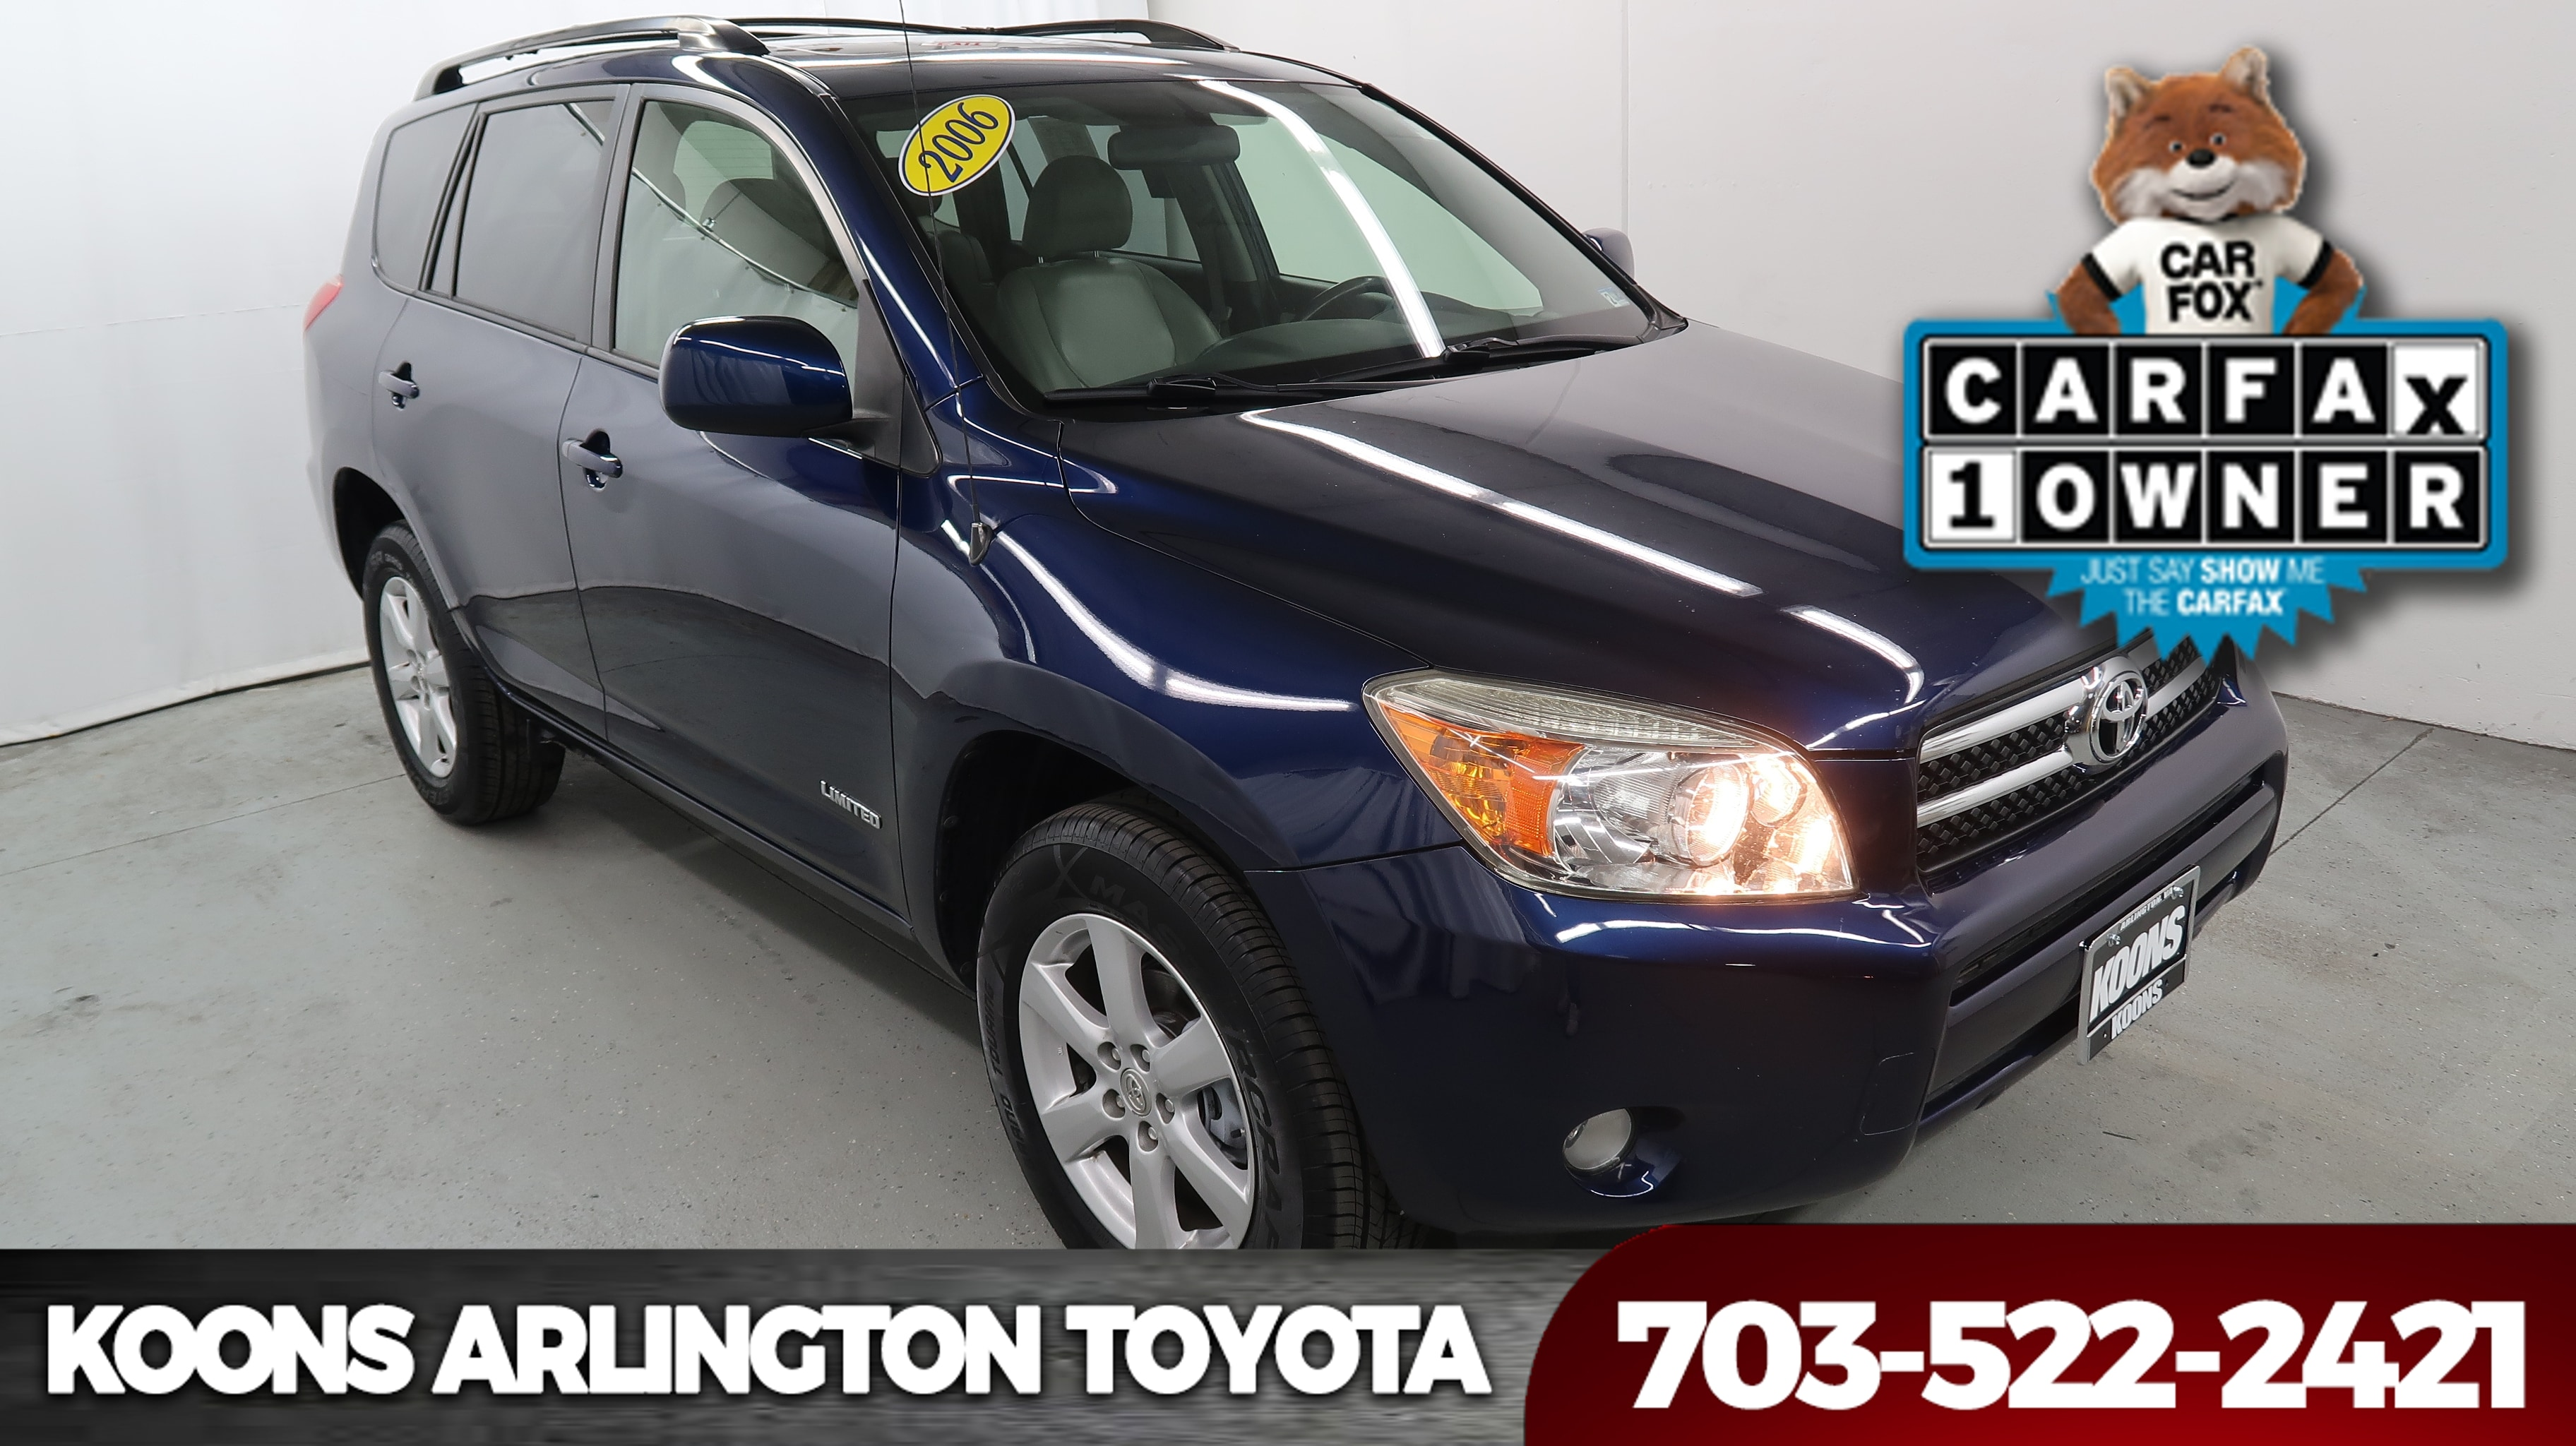 Carfax Used Cars Under 6000 New Used Car Specials In Arlington County at Koons Arlington toyota